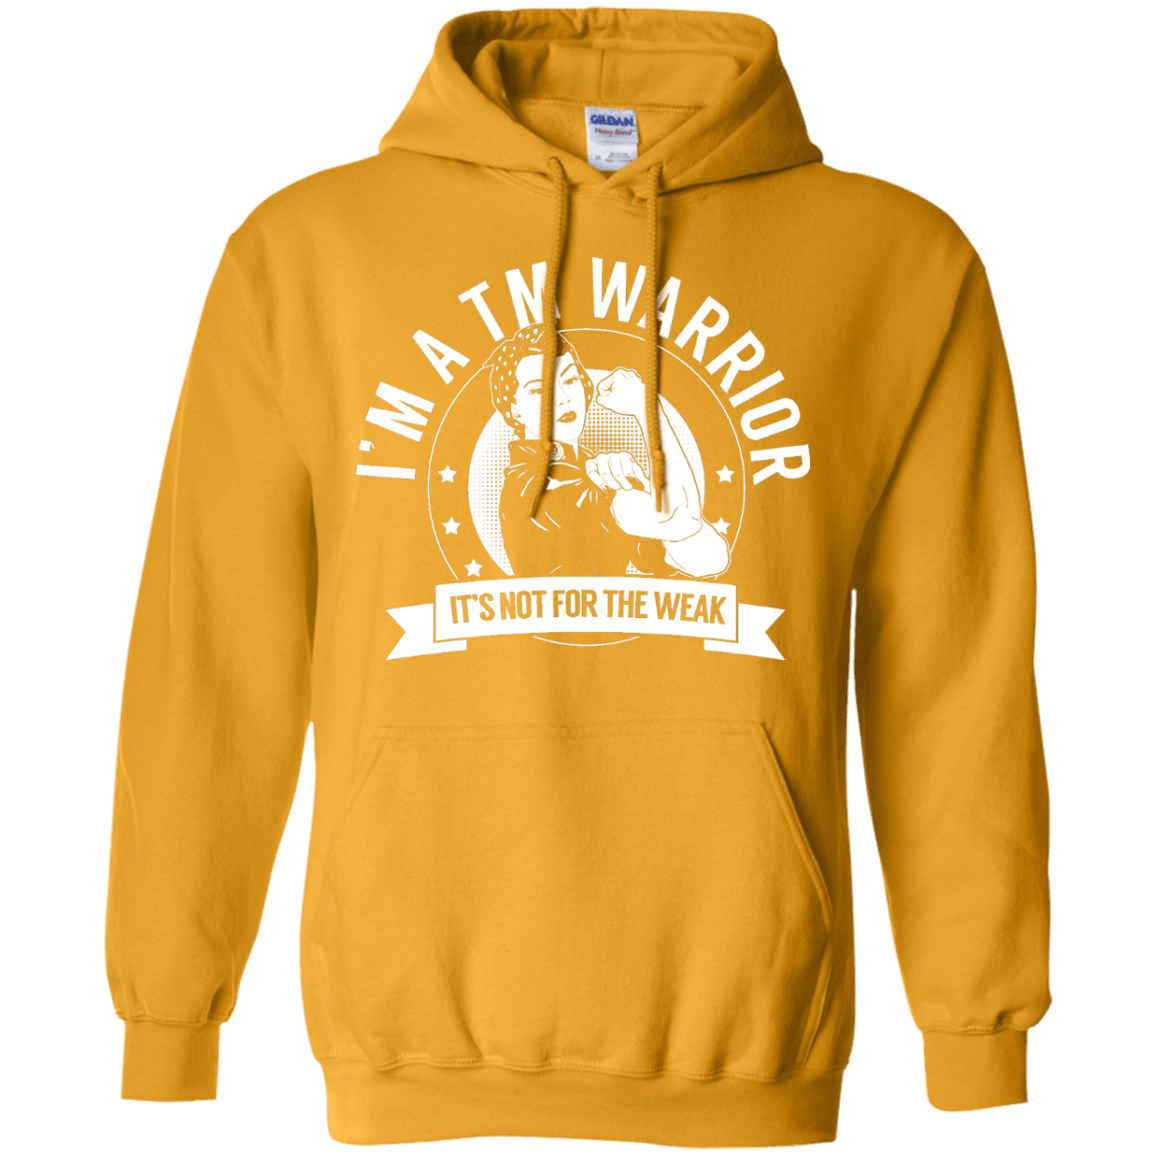 Hoodies - Transverse Myelitis - TM Warrior Not For The Weak Pullover Hoodie 8 Oz